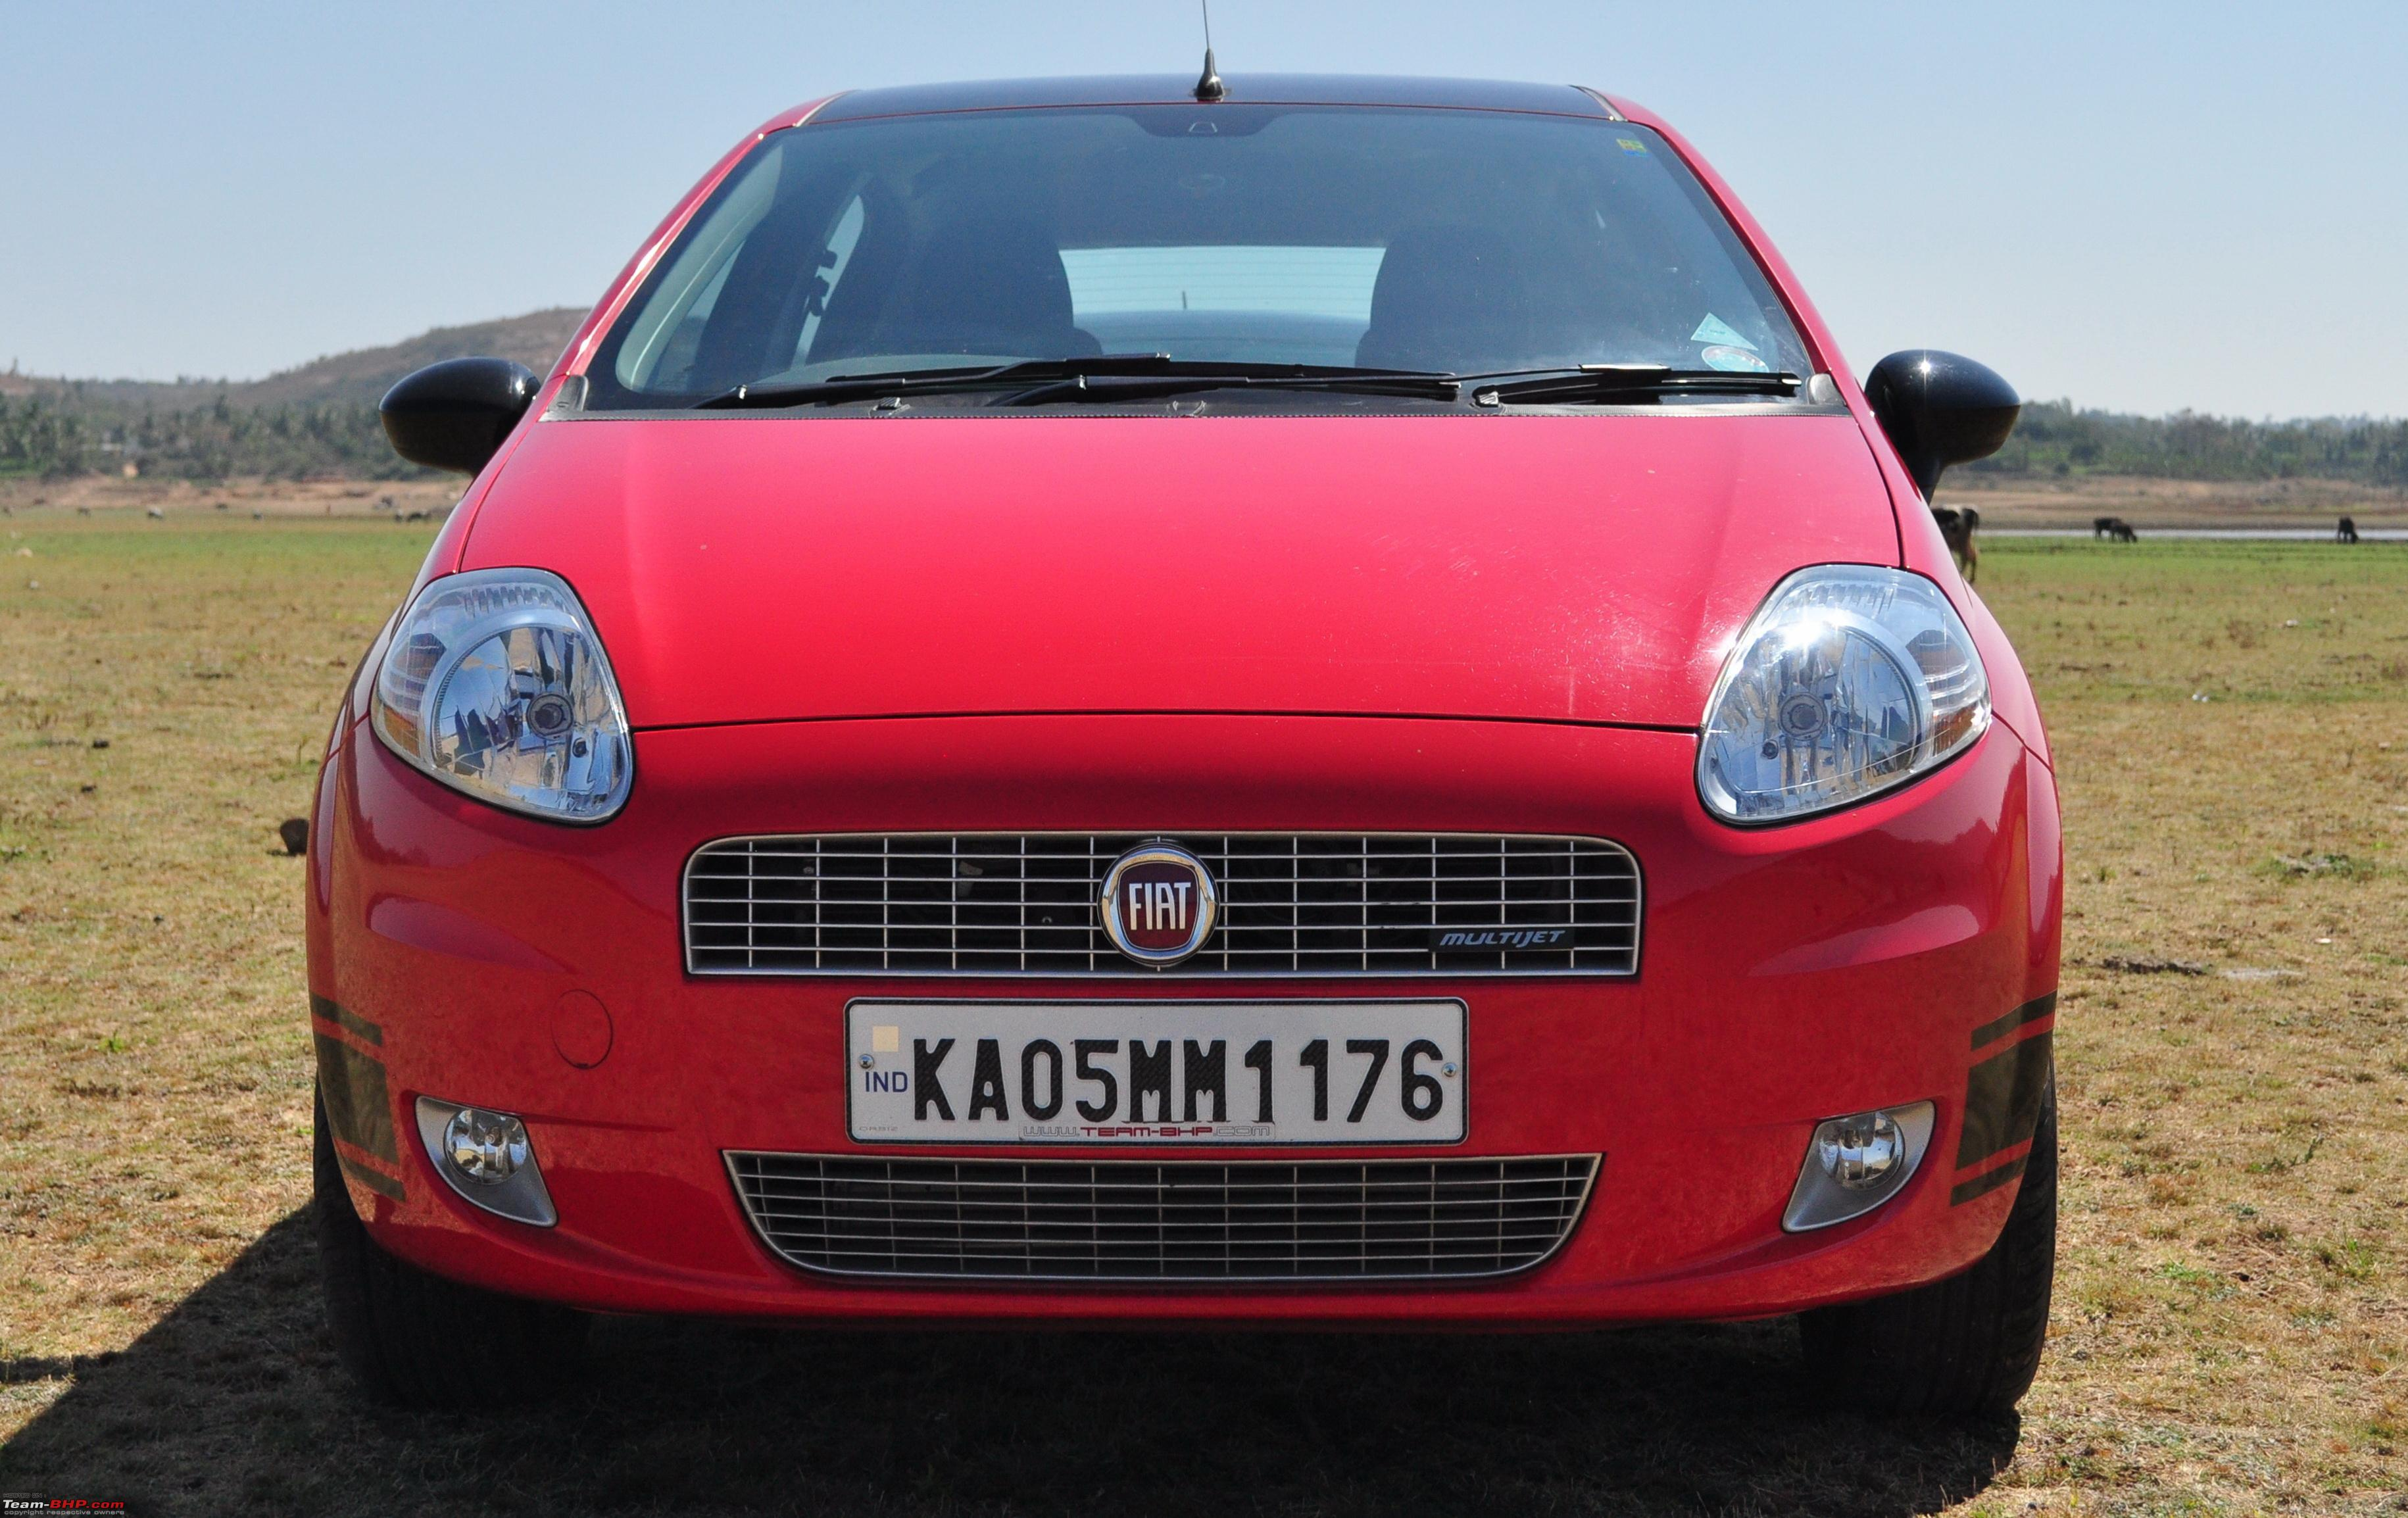 The Red Rocket Fiat Grande Punto Sport Update Interiors Now In Karlsson Leather Page 15 Team Bhp